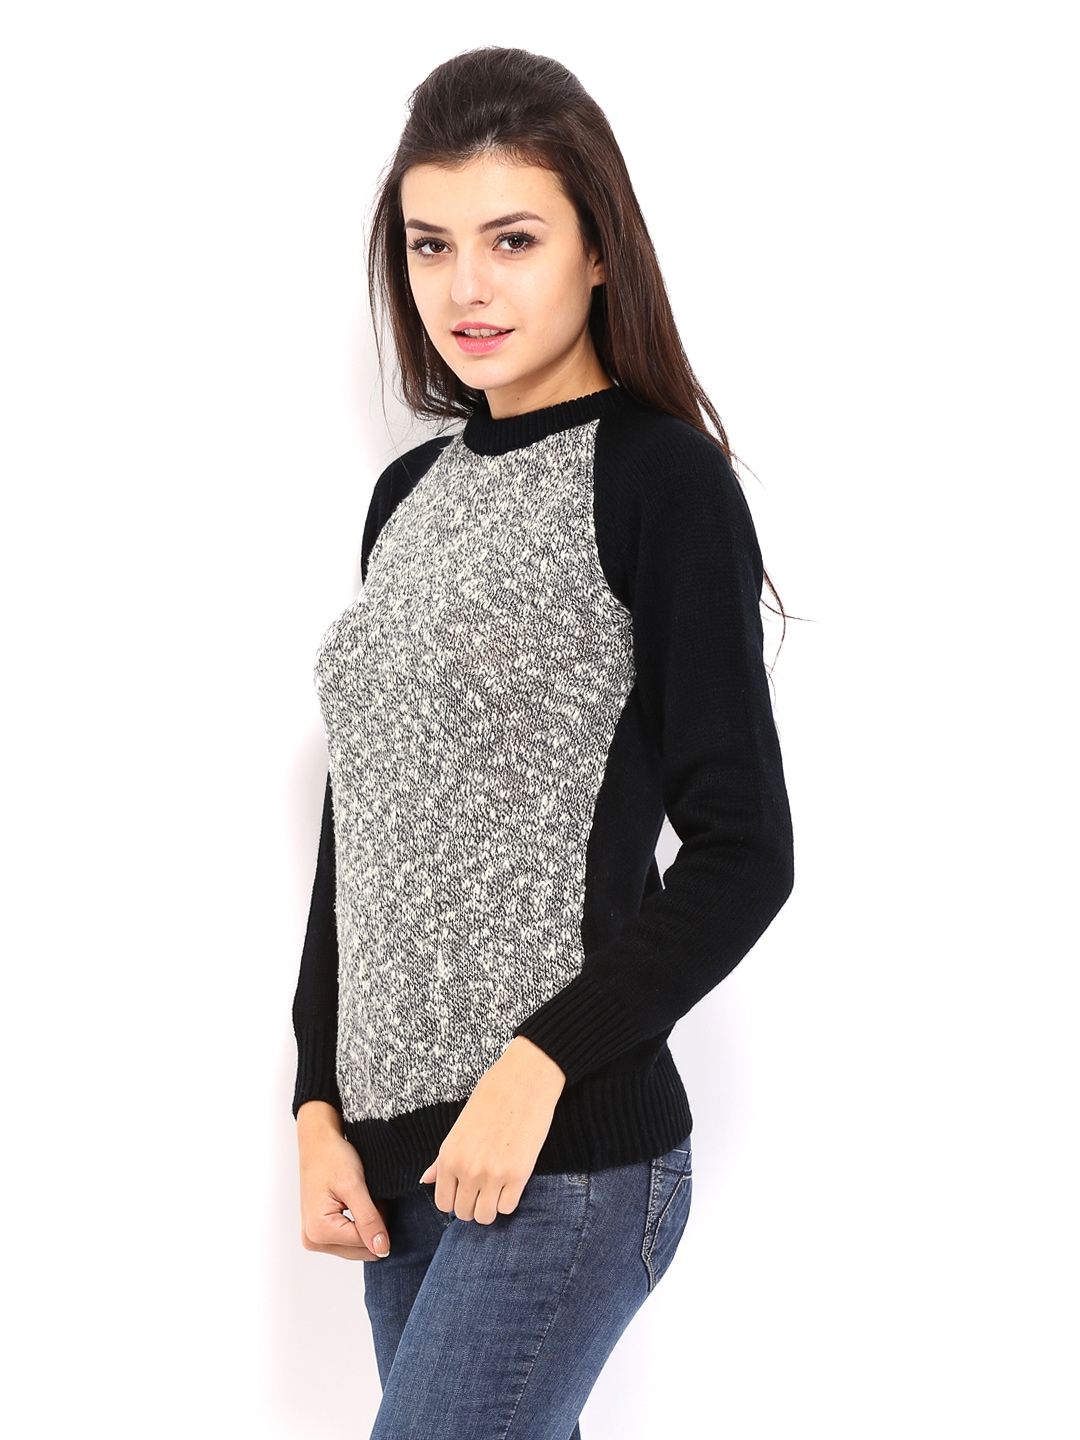 4dbbc833575 Buy Allen Solly Woman Grey   Black Sweater (multicolor) 7512435 for women  online in india on Myntra at Yebhi.com